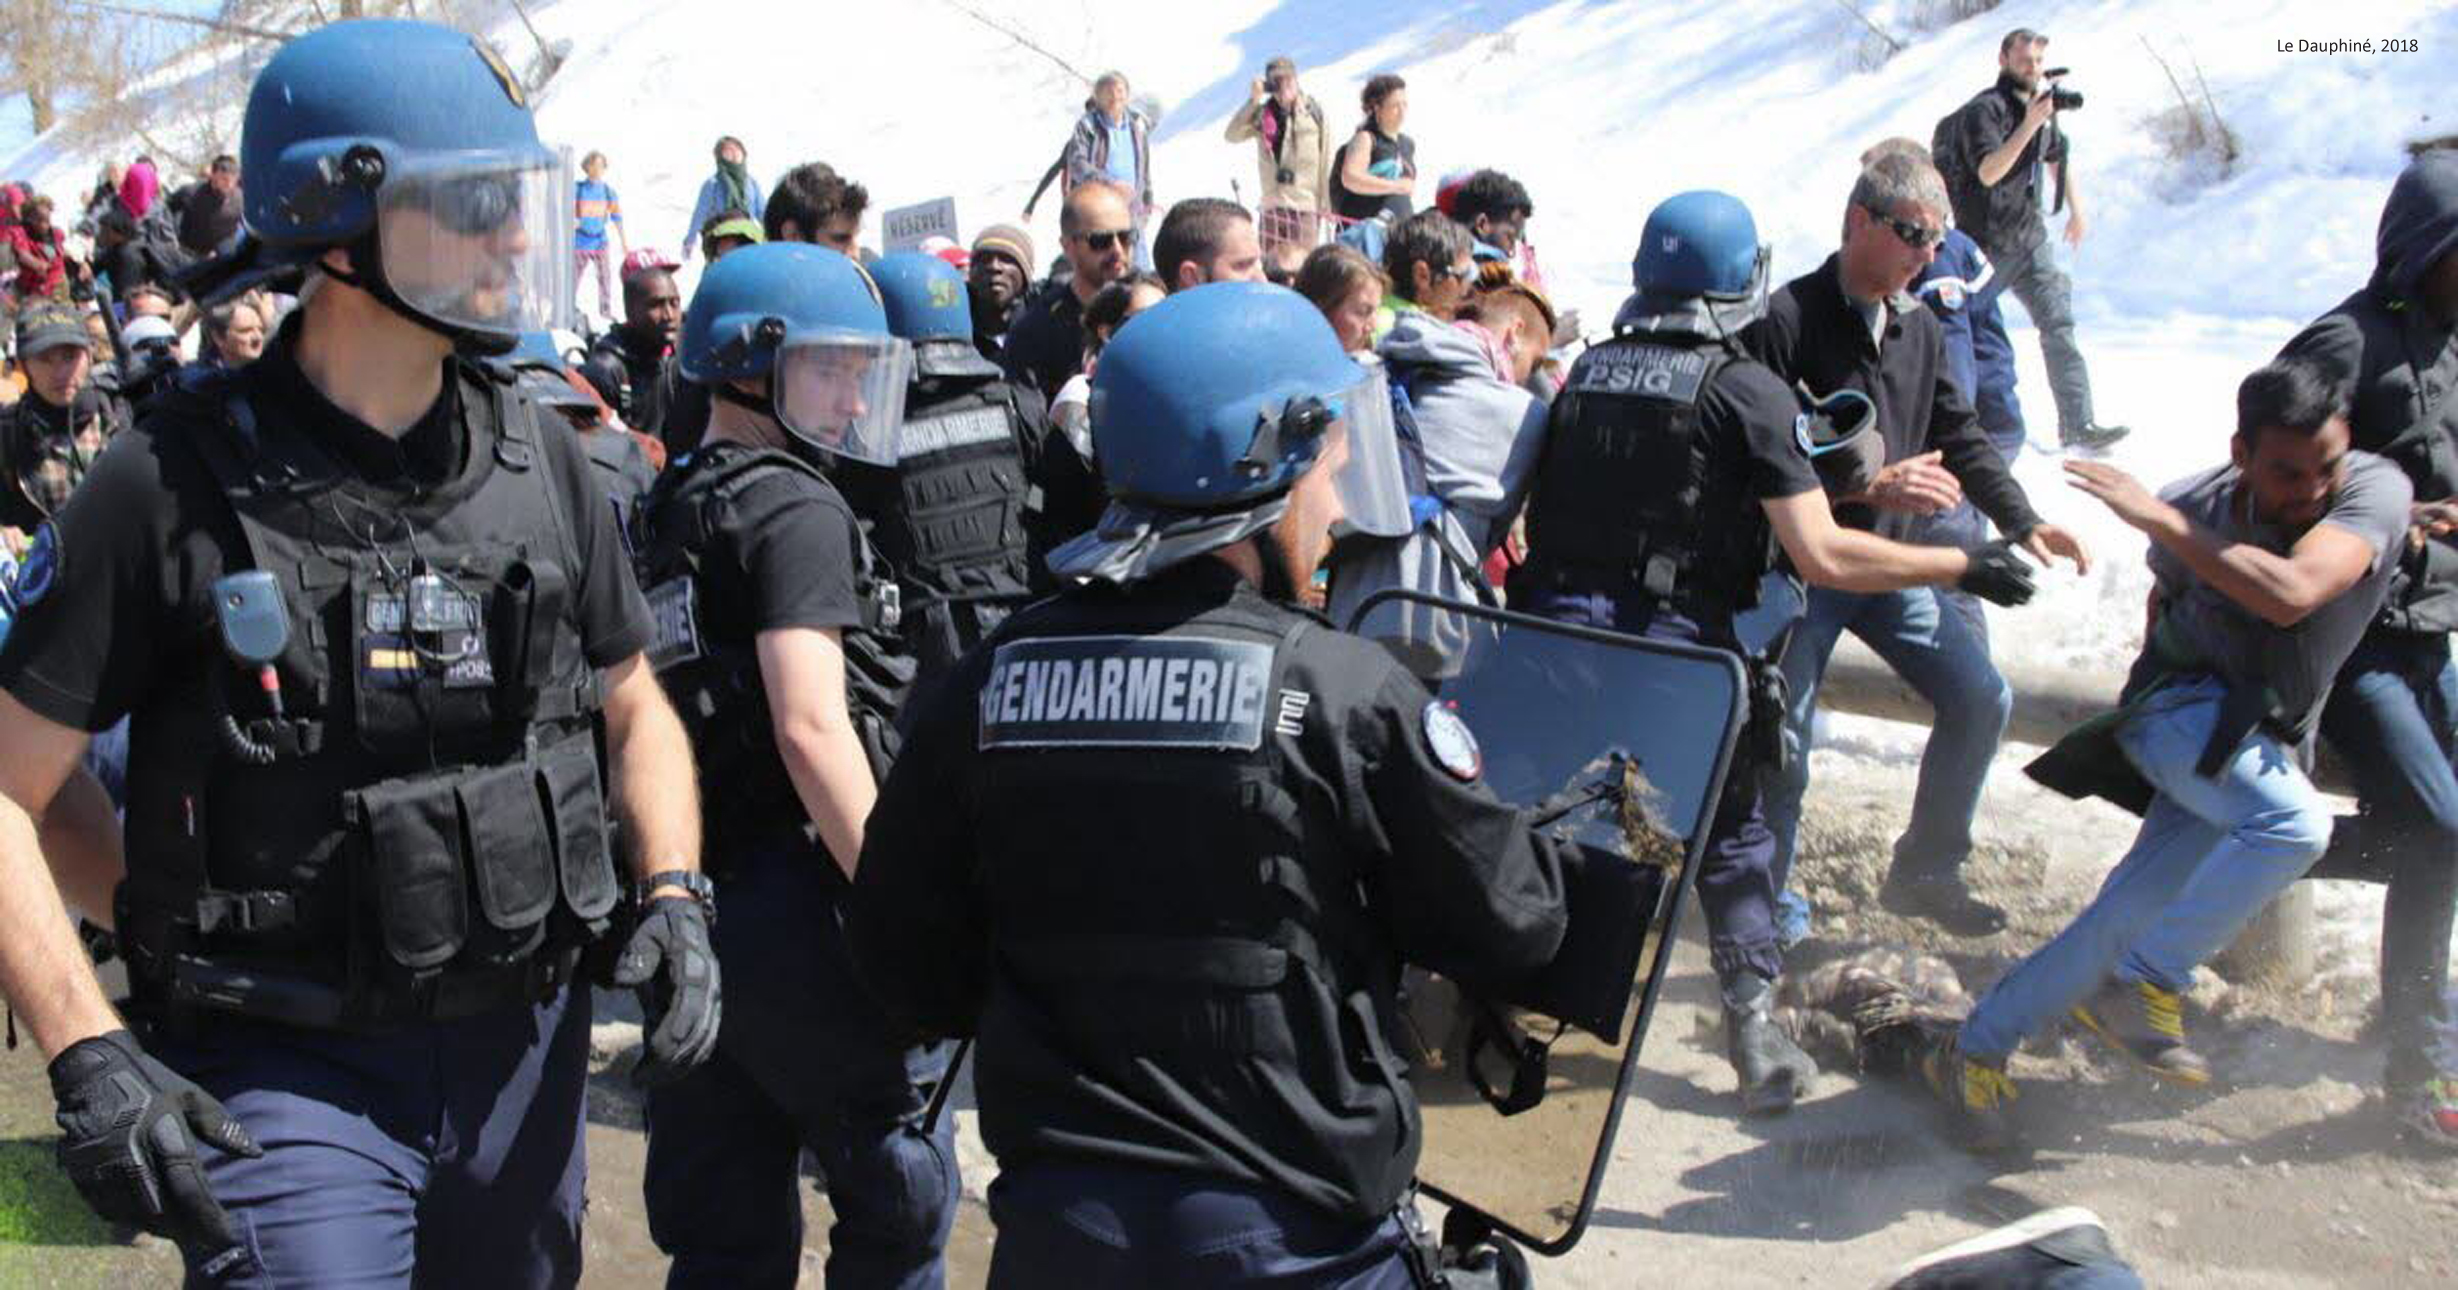 April 2018: Counter-demonstration of the solidarity movement at the France-Italy border and altercation with the French police.